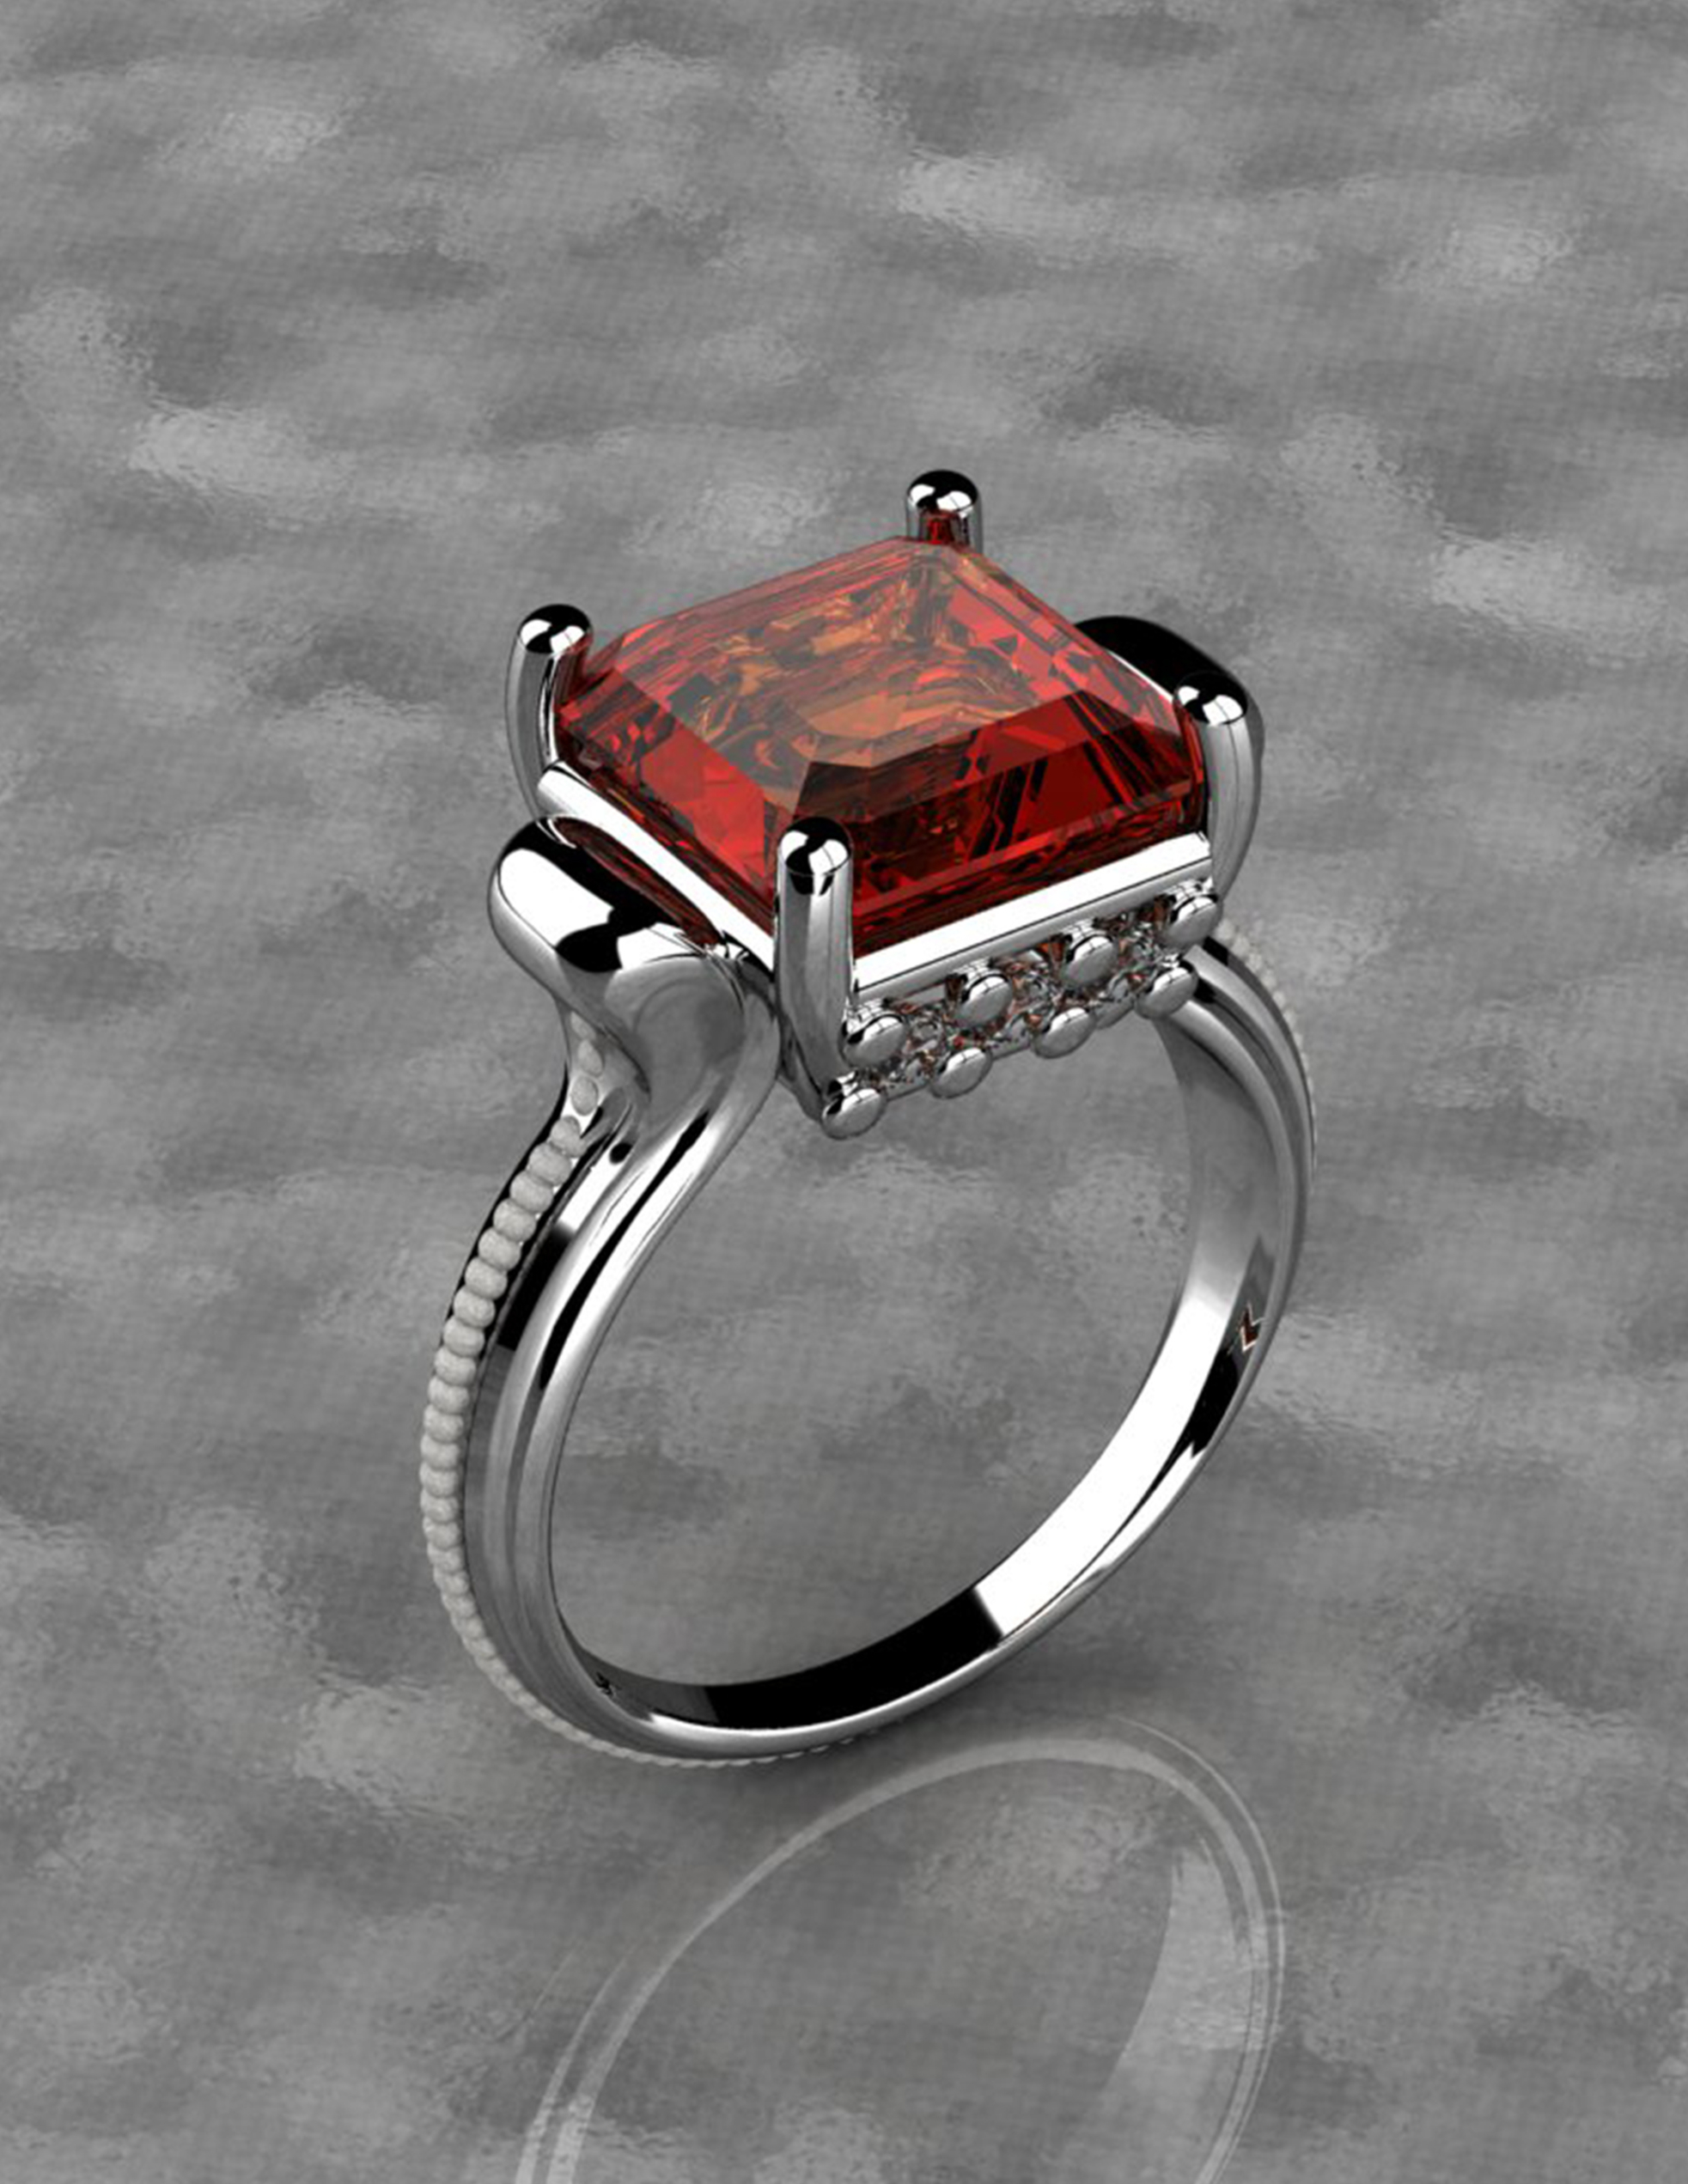 Silver ring with red diamond